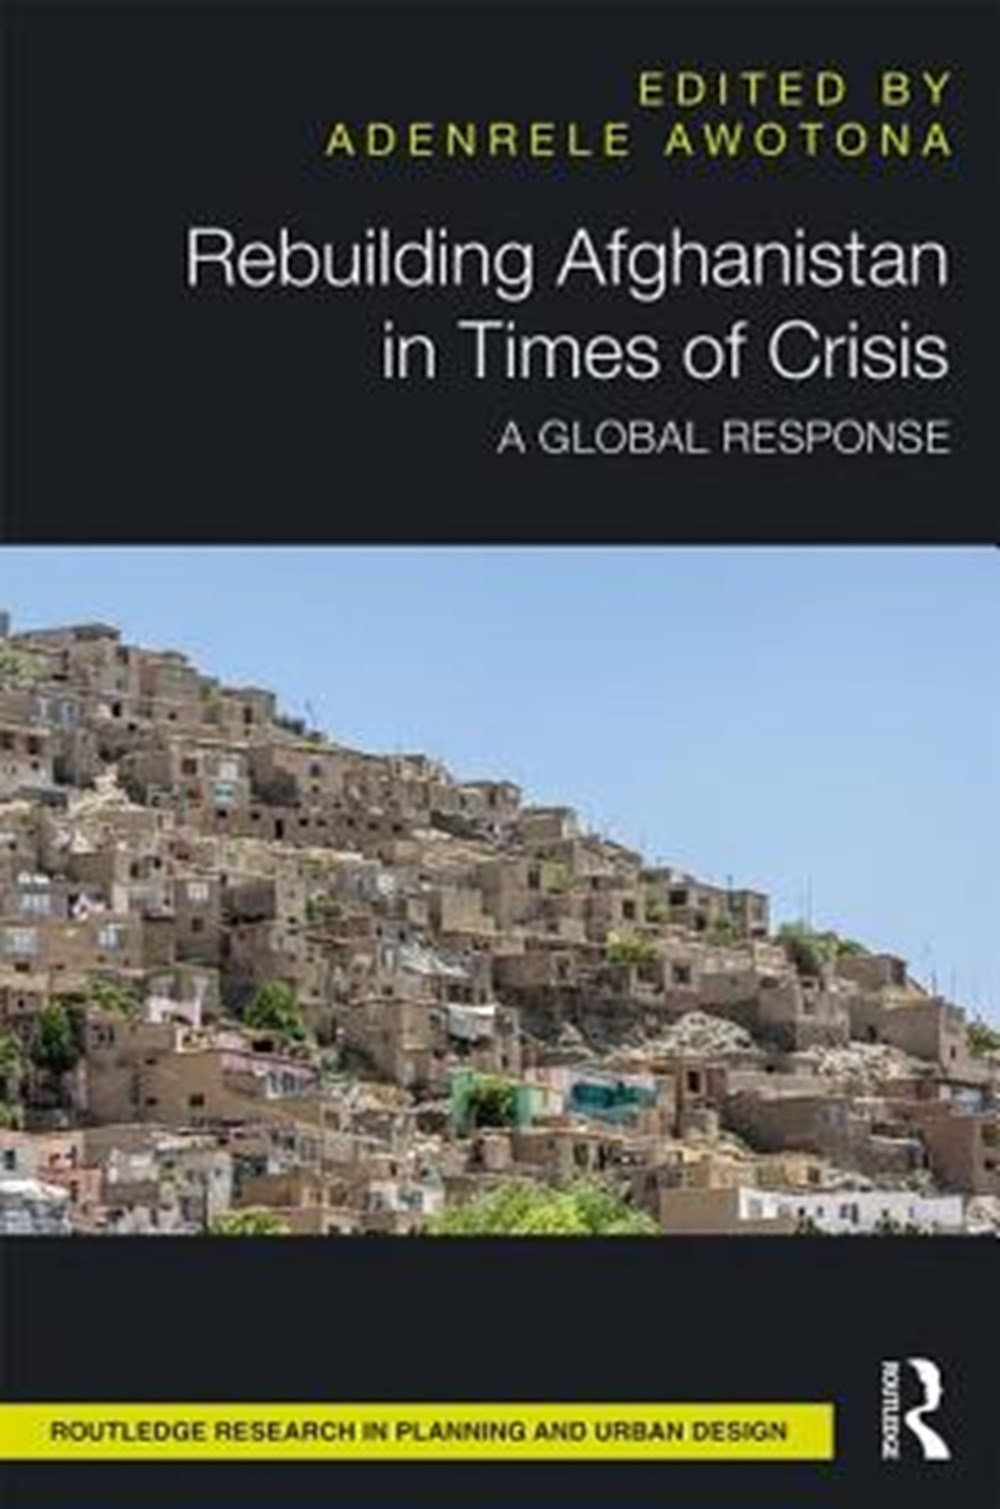 Rebuilding Afghanistan in Times of Crisis A Global Response